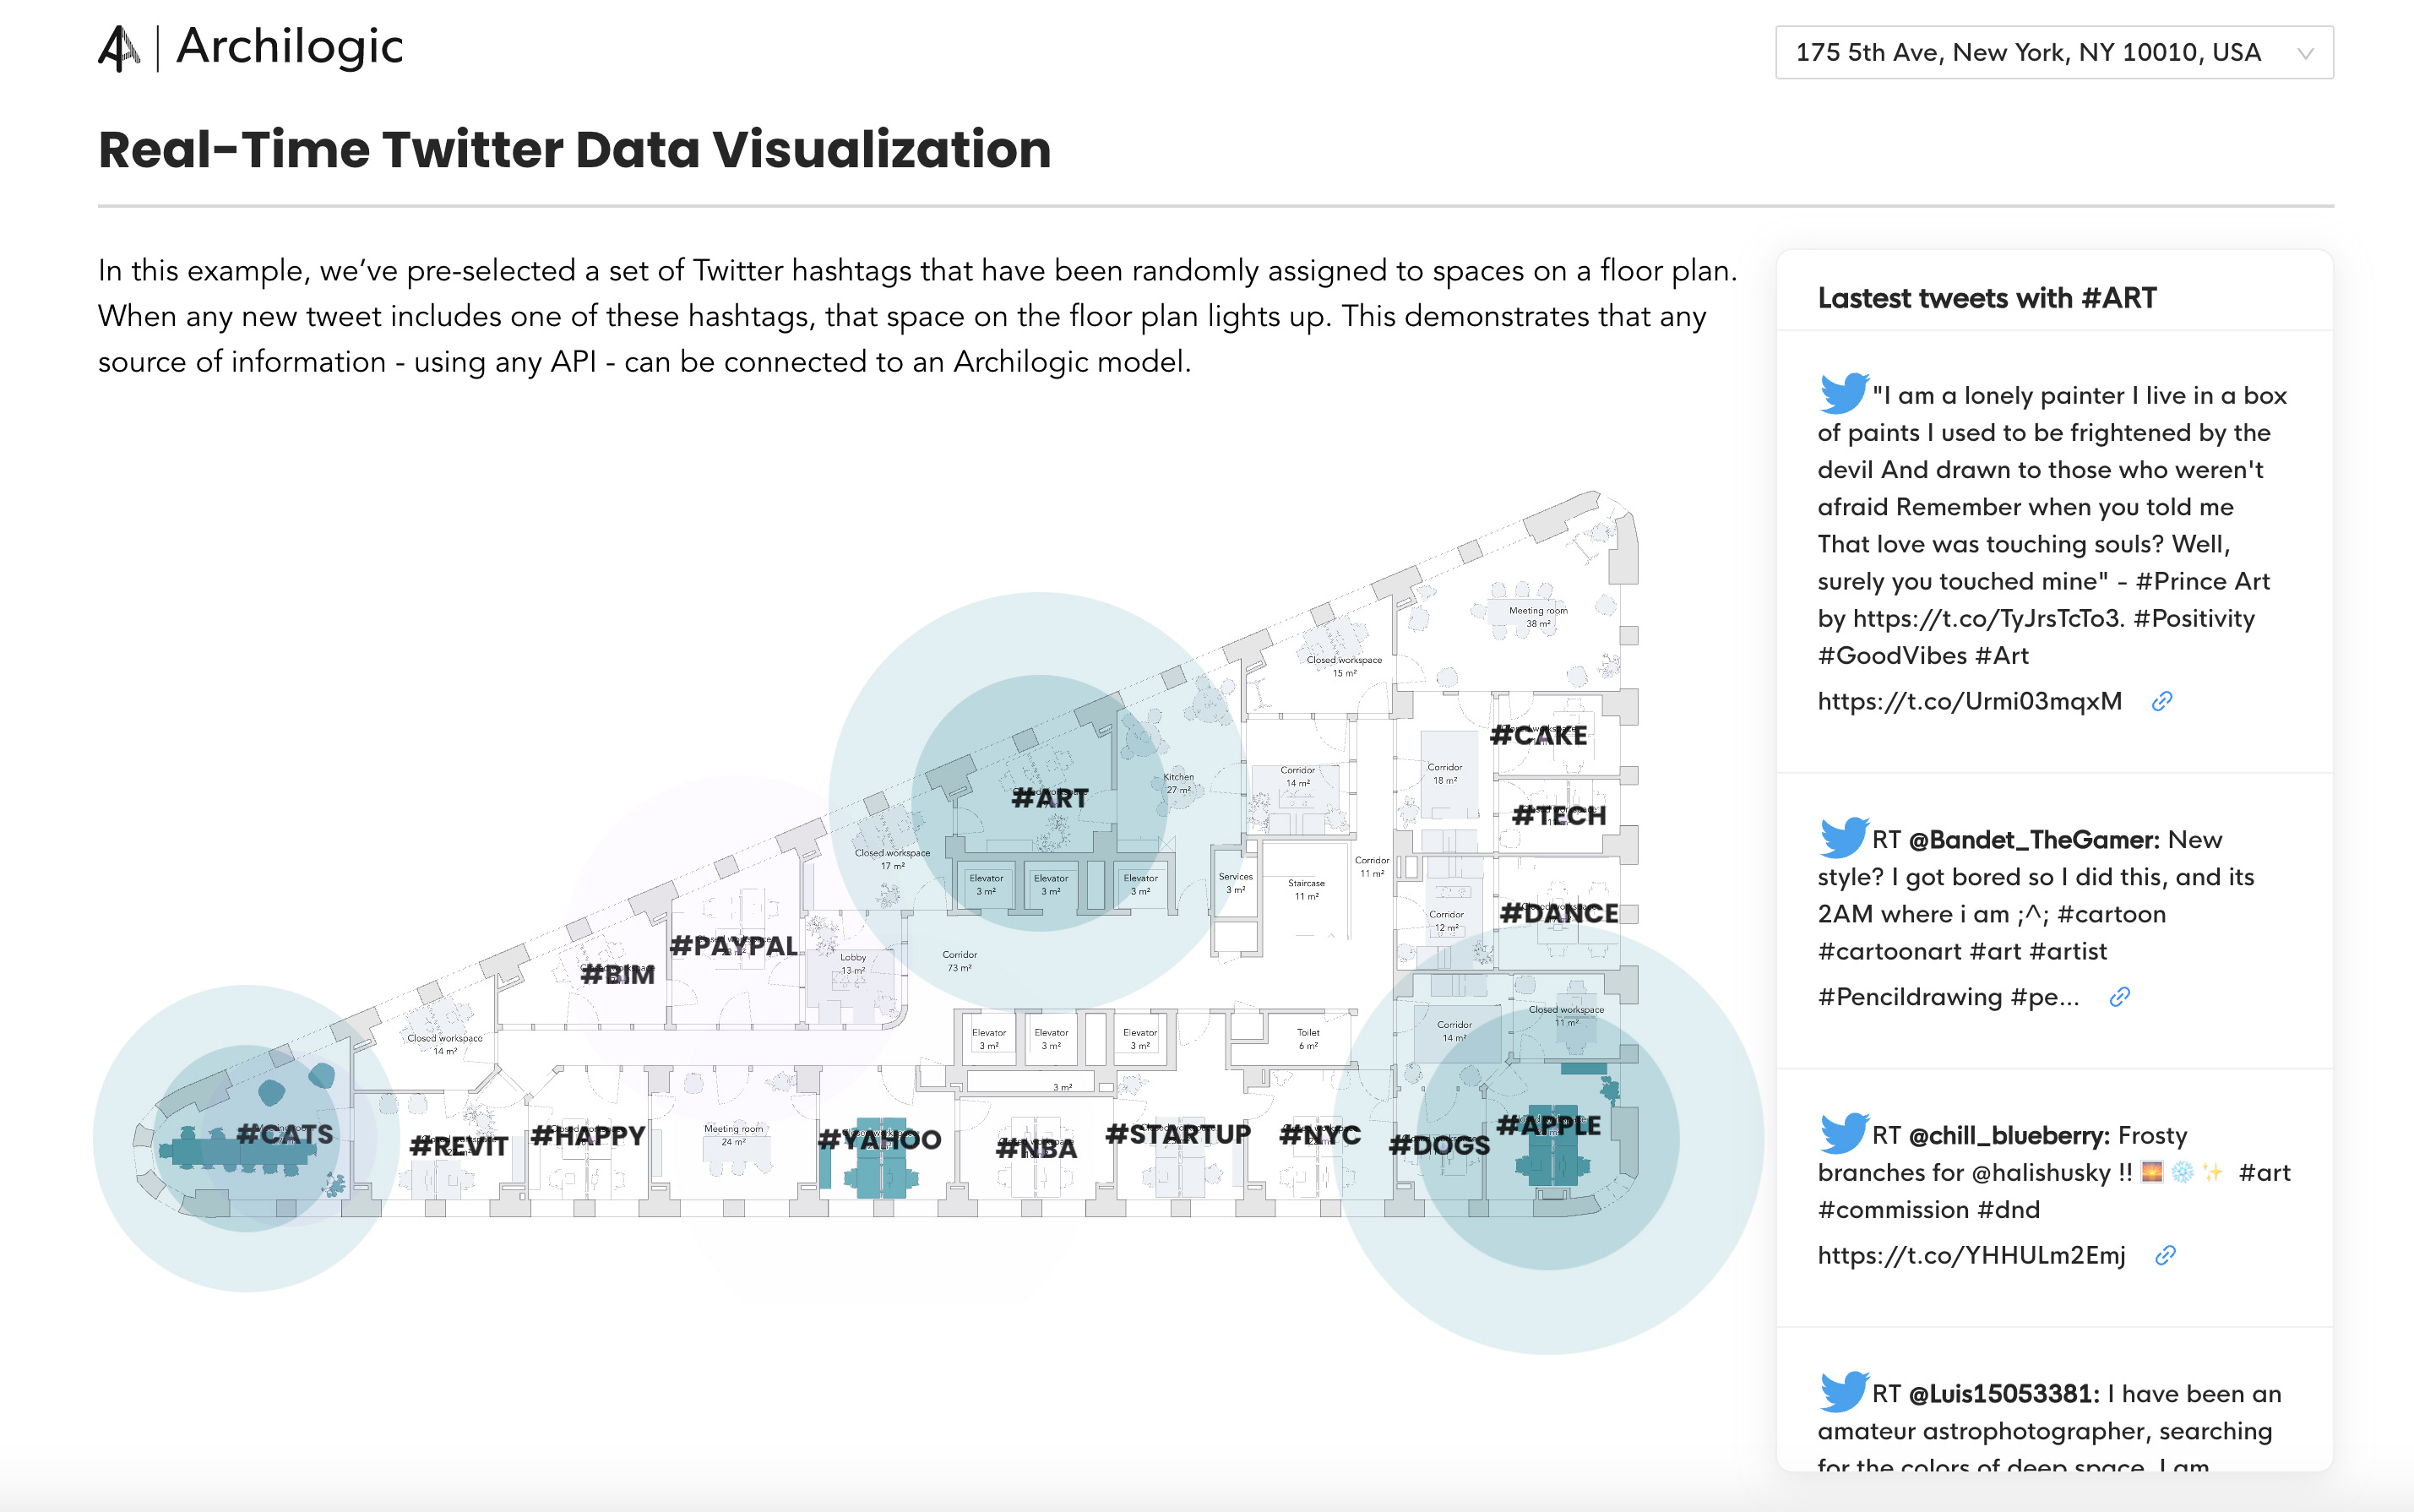 Visualization of Real-Time Data